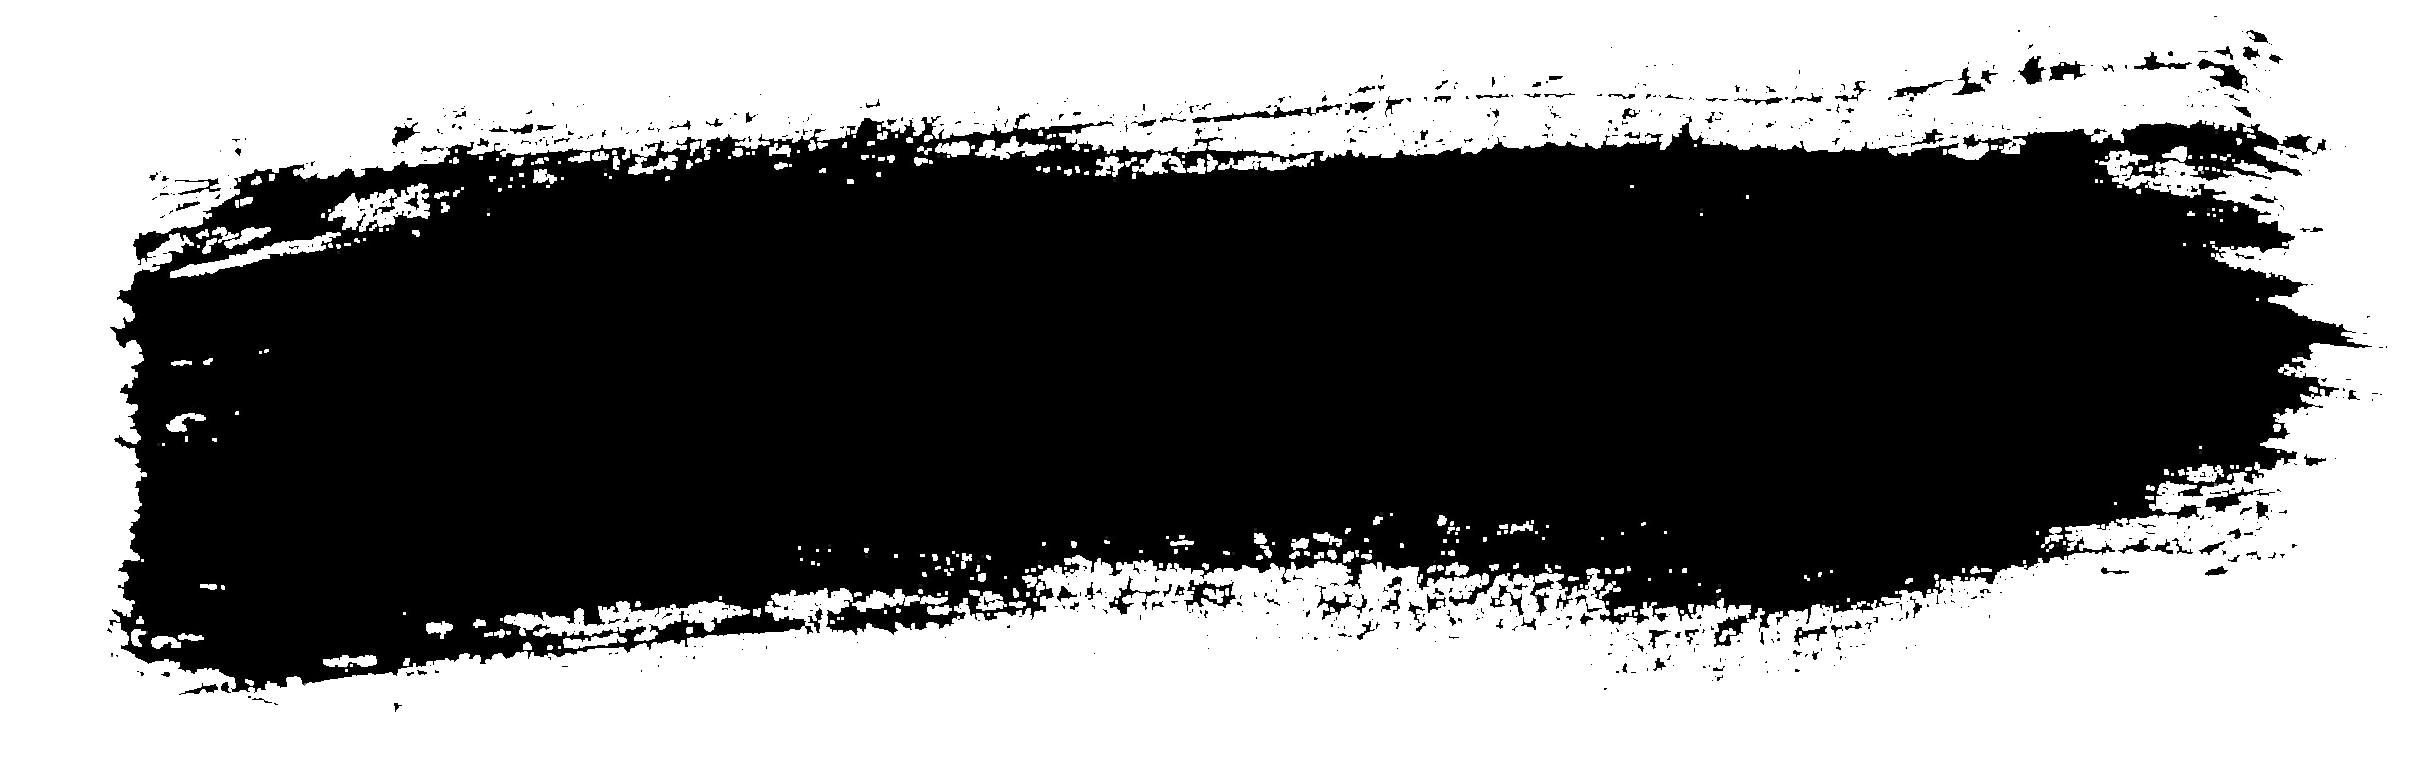 White paint brush stroke png. Grunge banner transparent